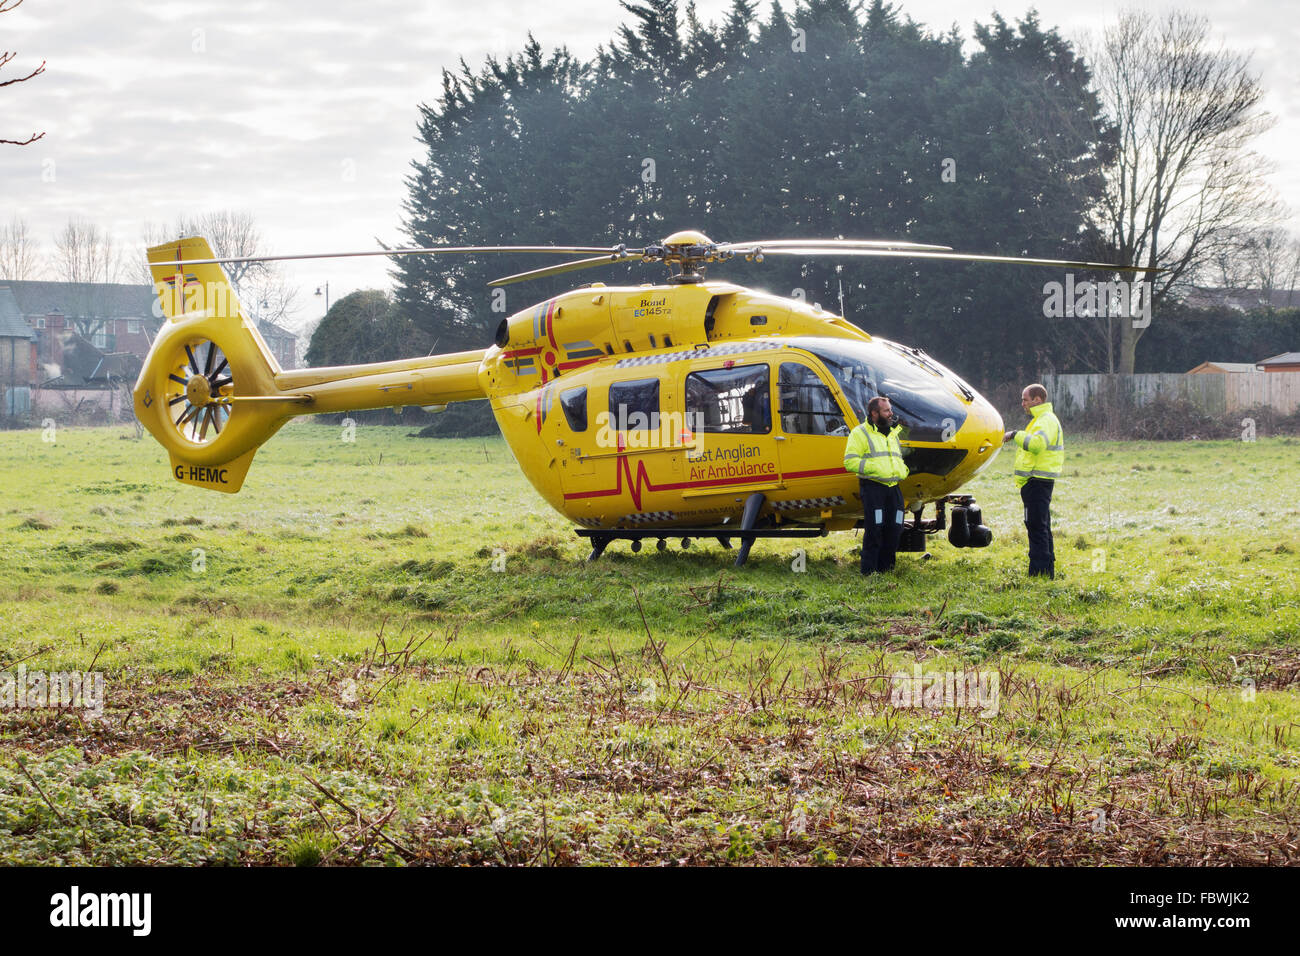 prince-william-standing-right-pilots-the-east-anglian-air-ambulance-FBWJK2.jpg